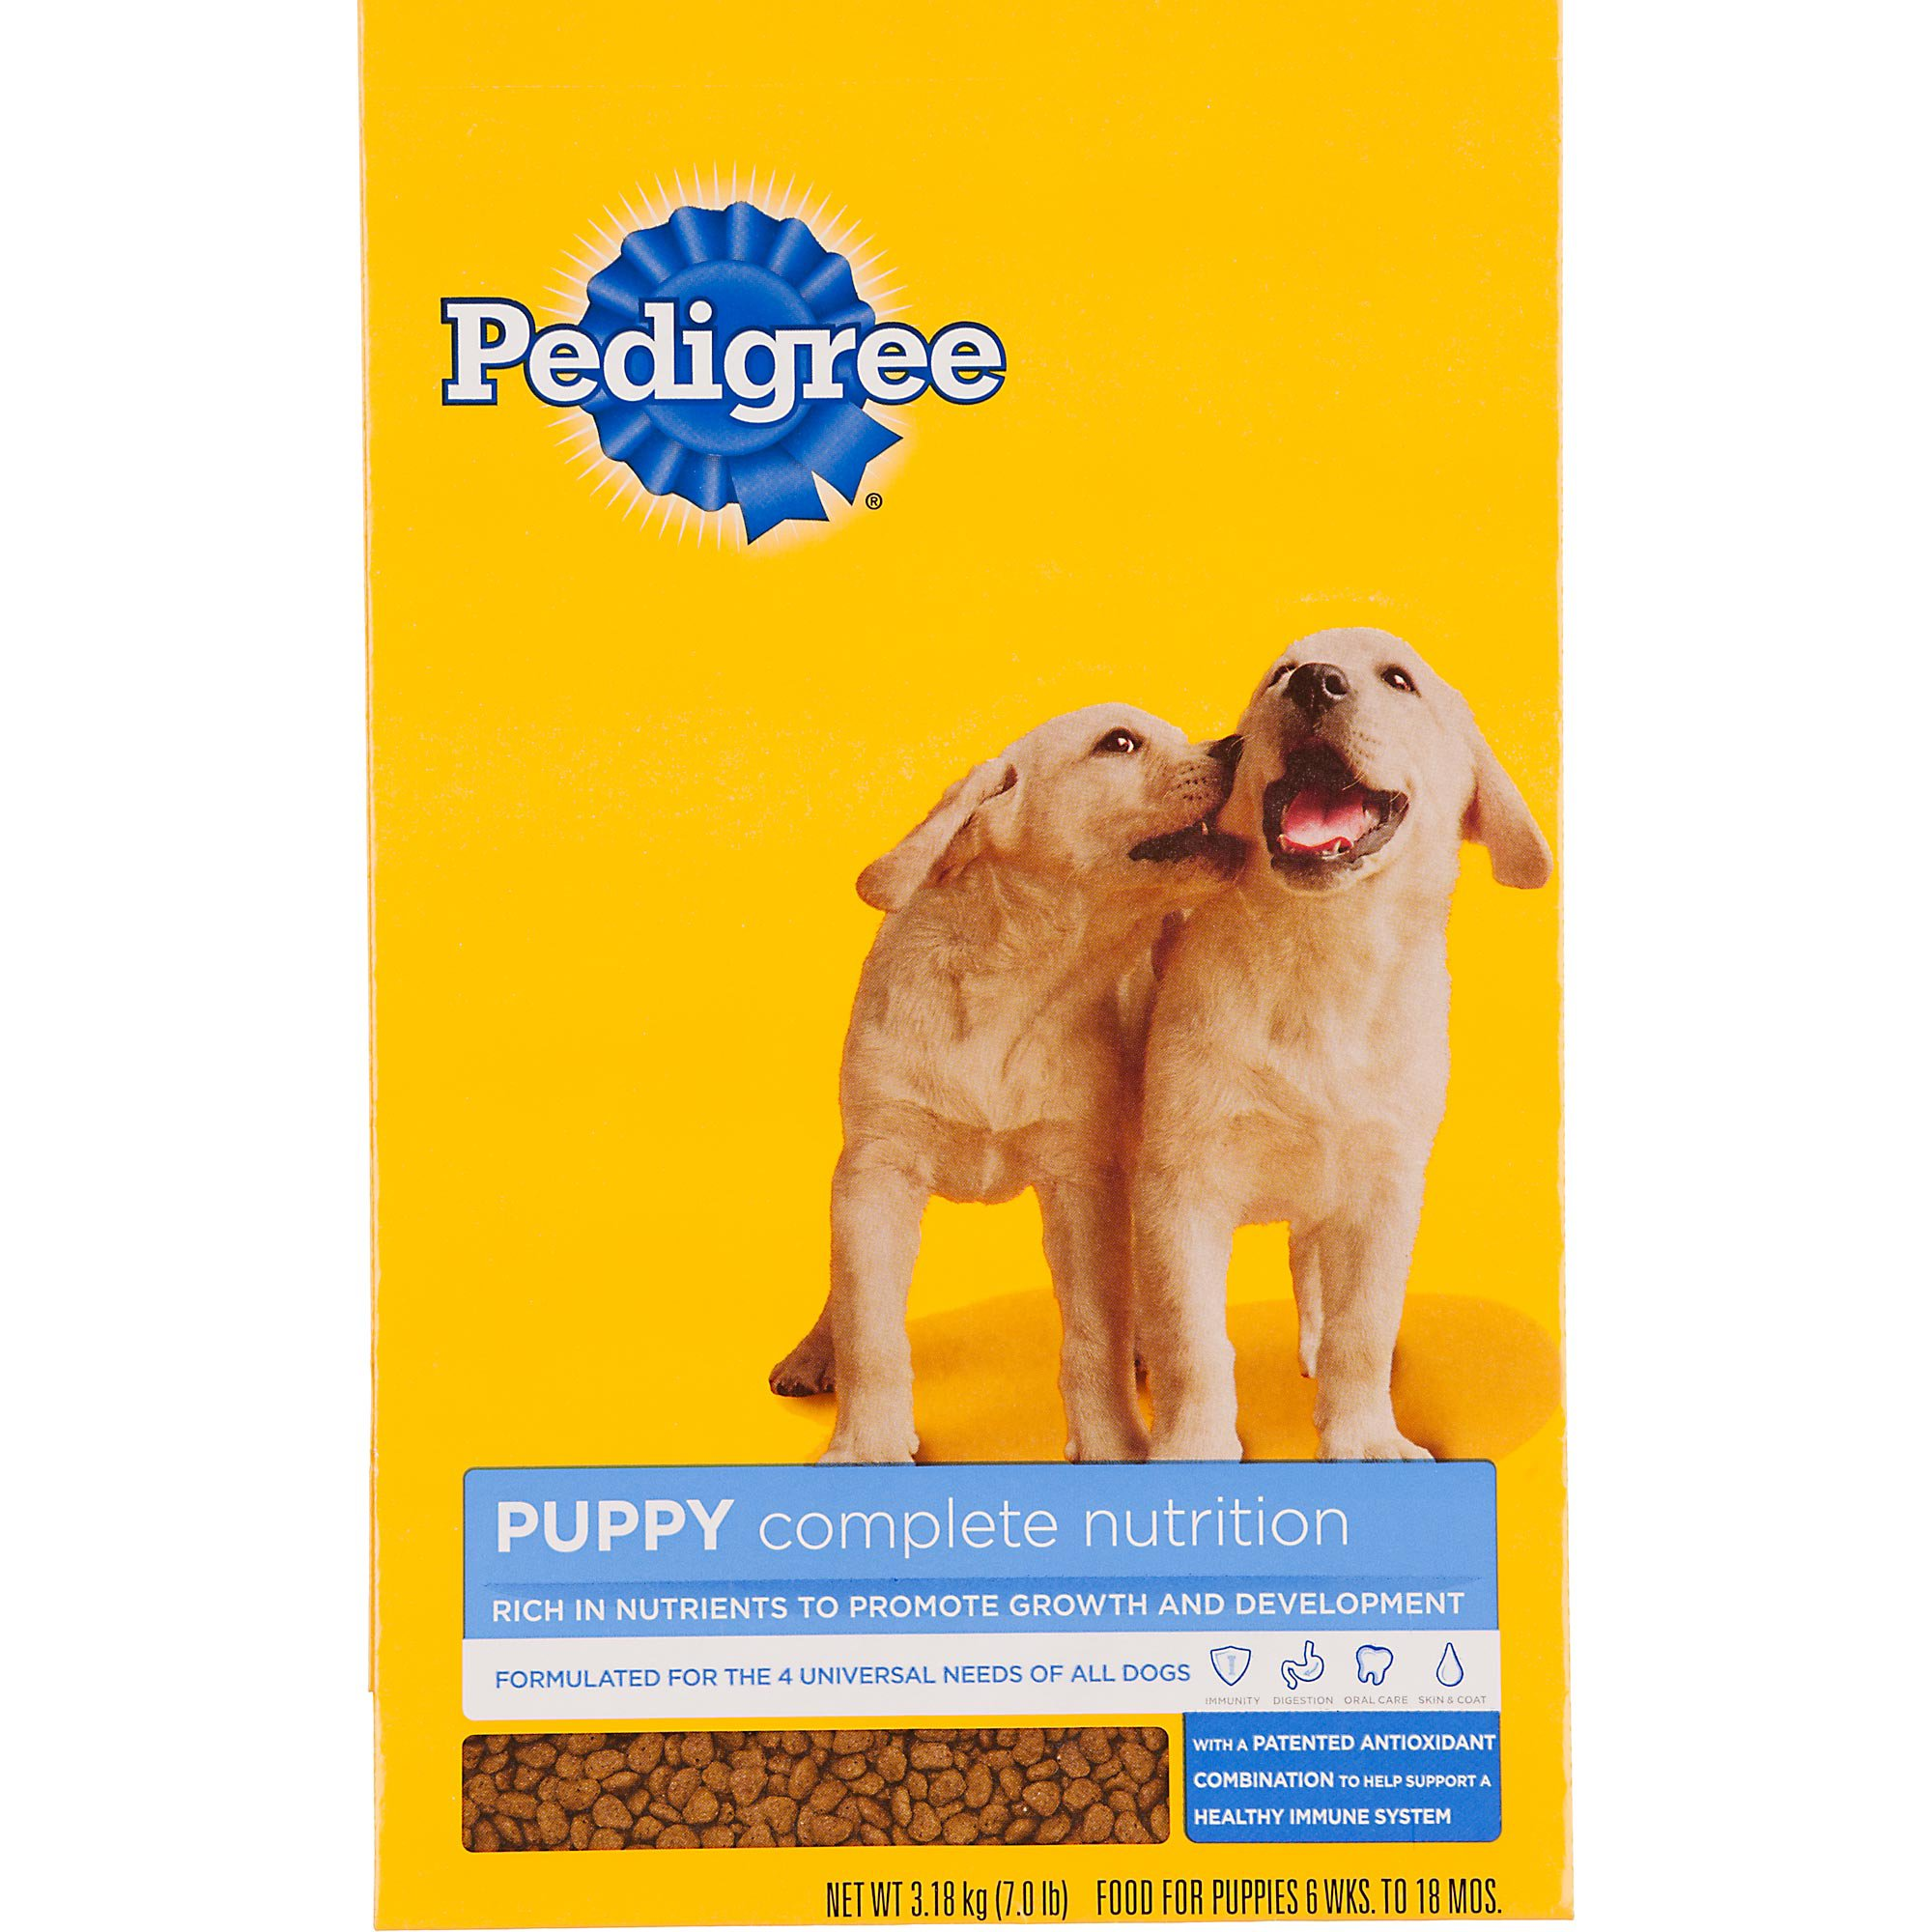 Pedigree Complete Nutrition Puppy Food Petco